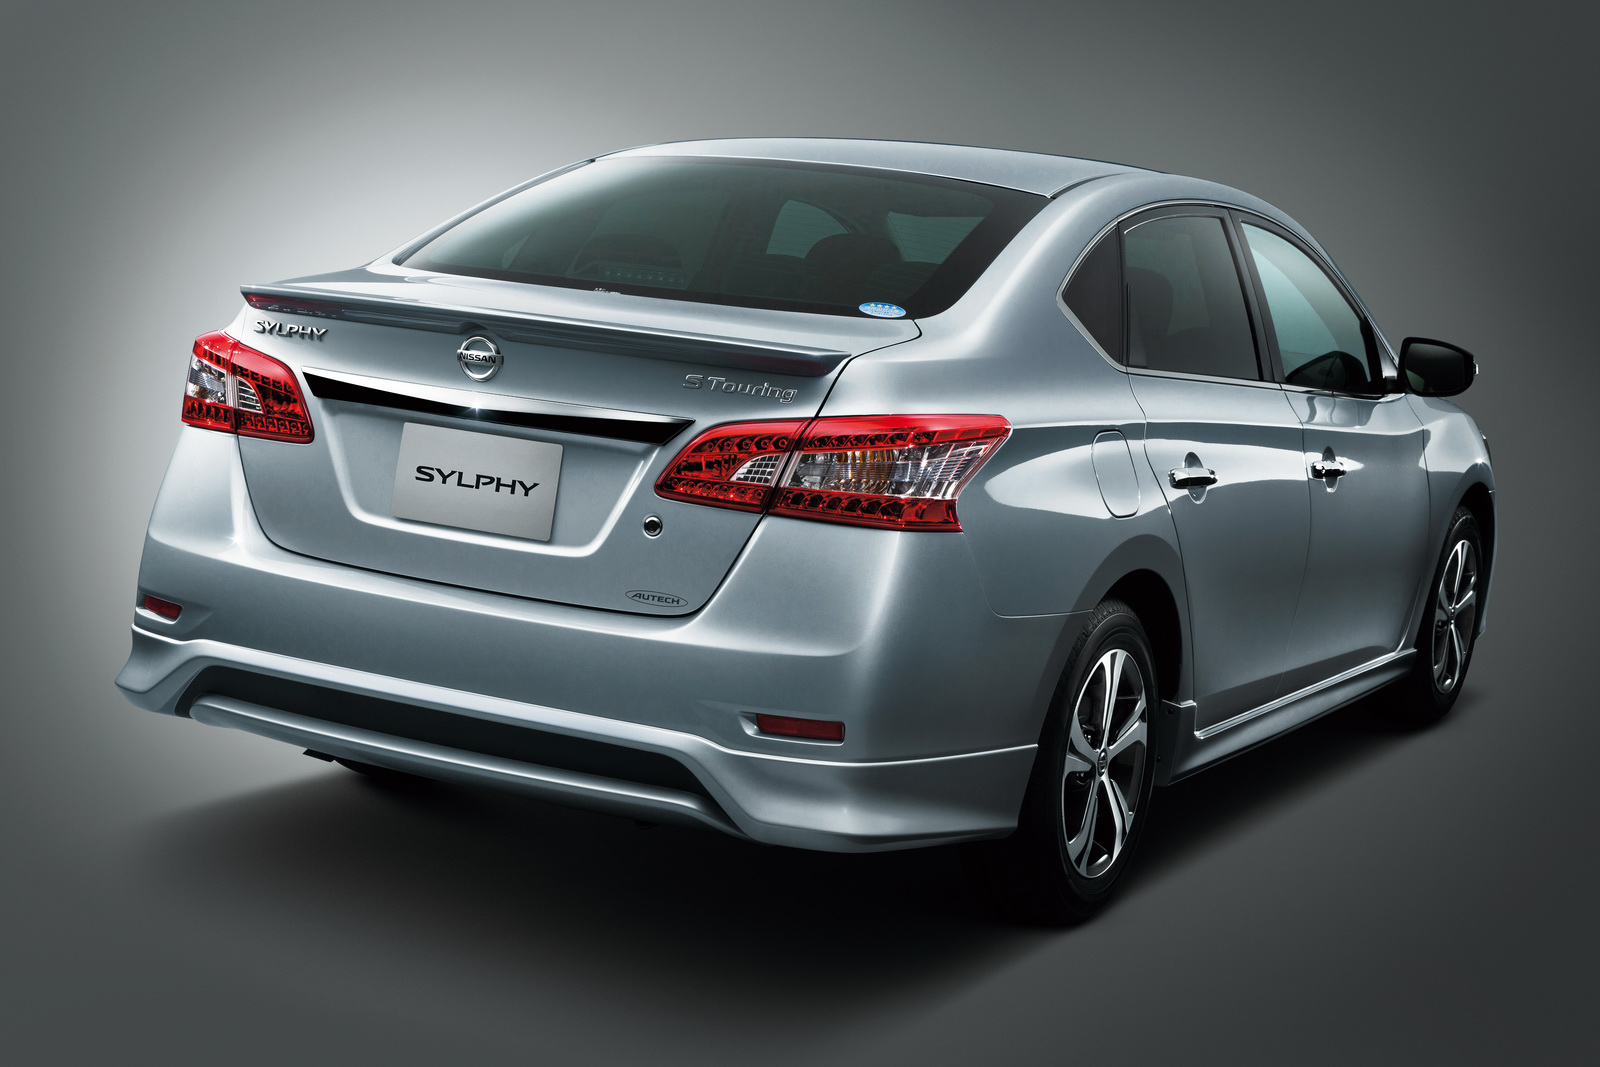 2018 Nissan Sylphy >> Nissan Sylphy S Touring Edition unveiled in Japan Paul Tan - Image 372148